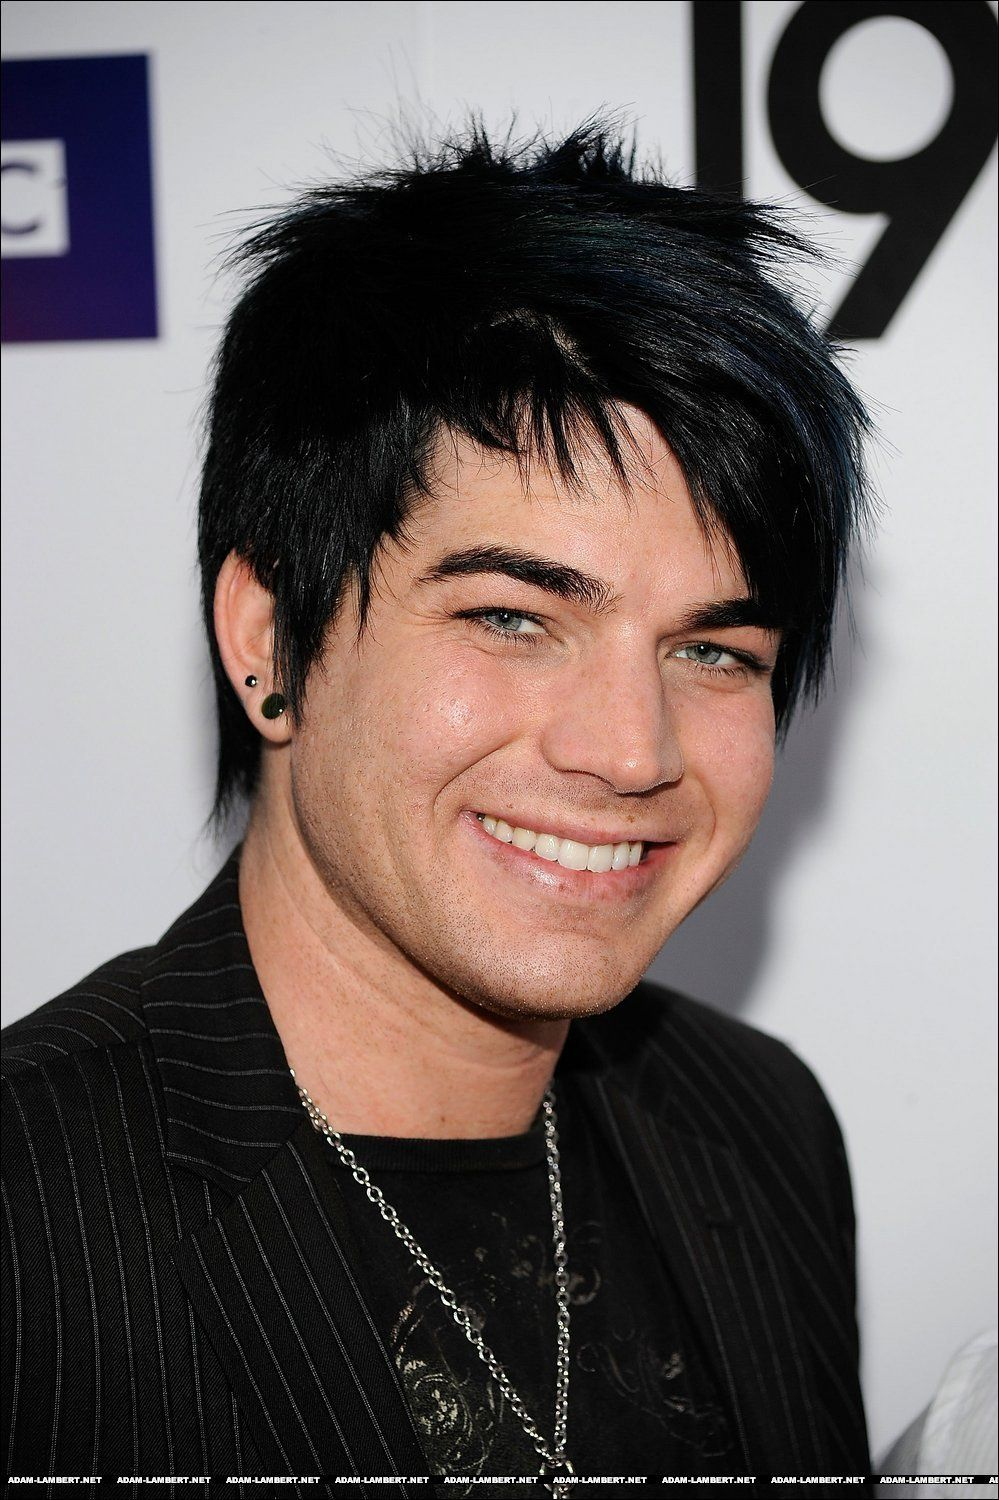 Magazine Highlight Adam Lambert Hairstyles Conclusive unendingly on